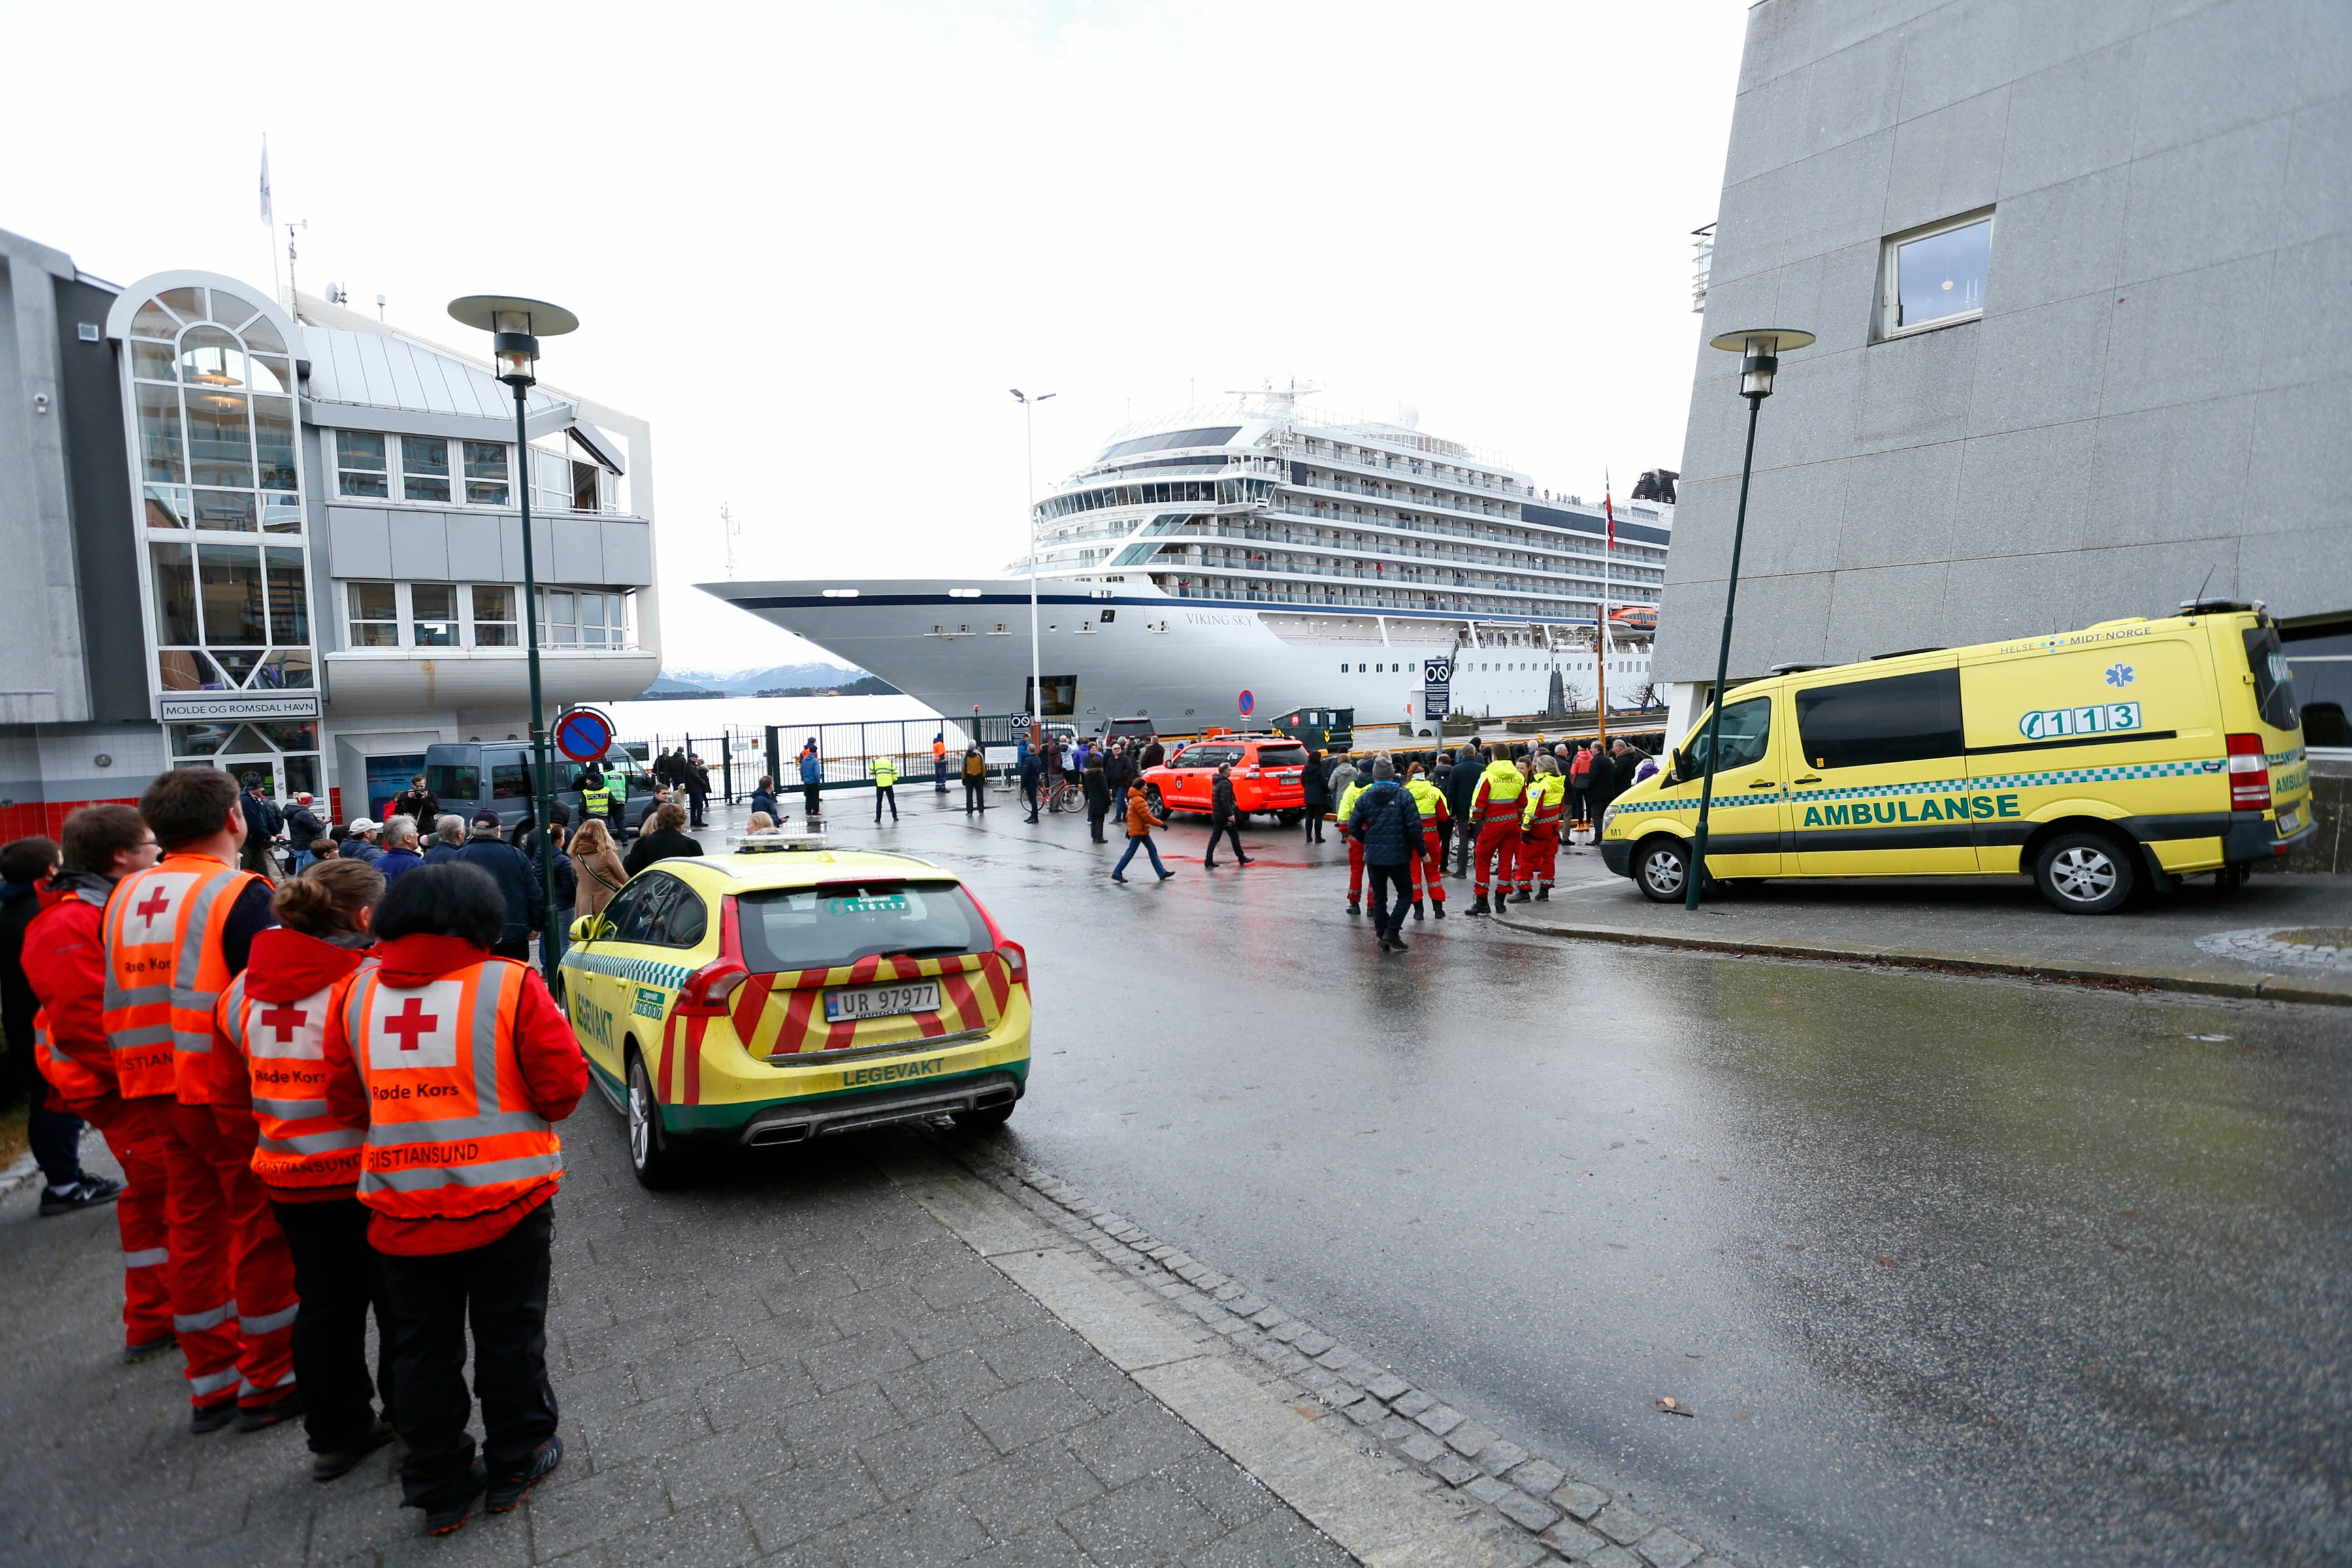 Norway wants to know why cruise ship sailed in stormy weather, forcing air evacuation